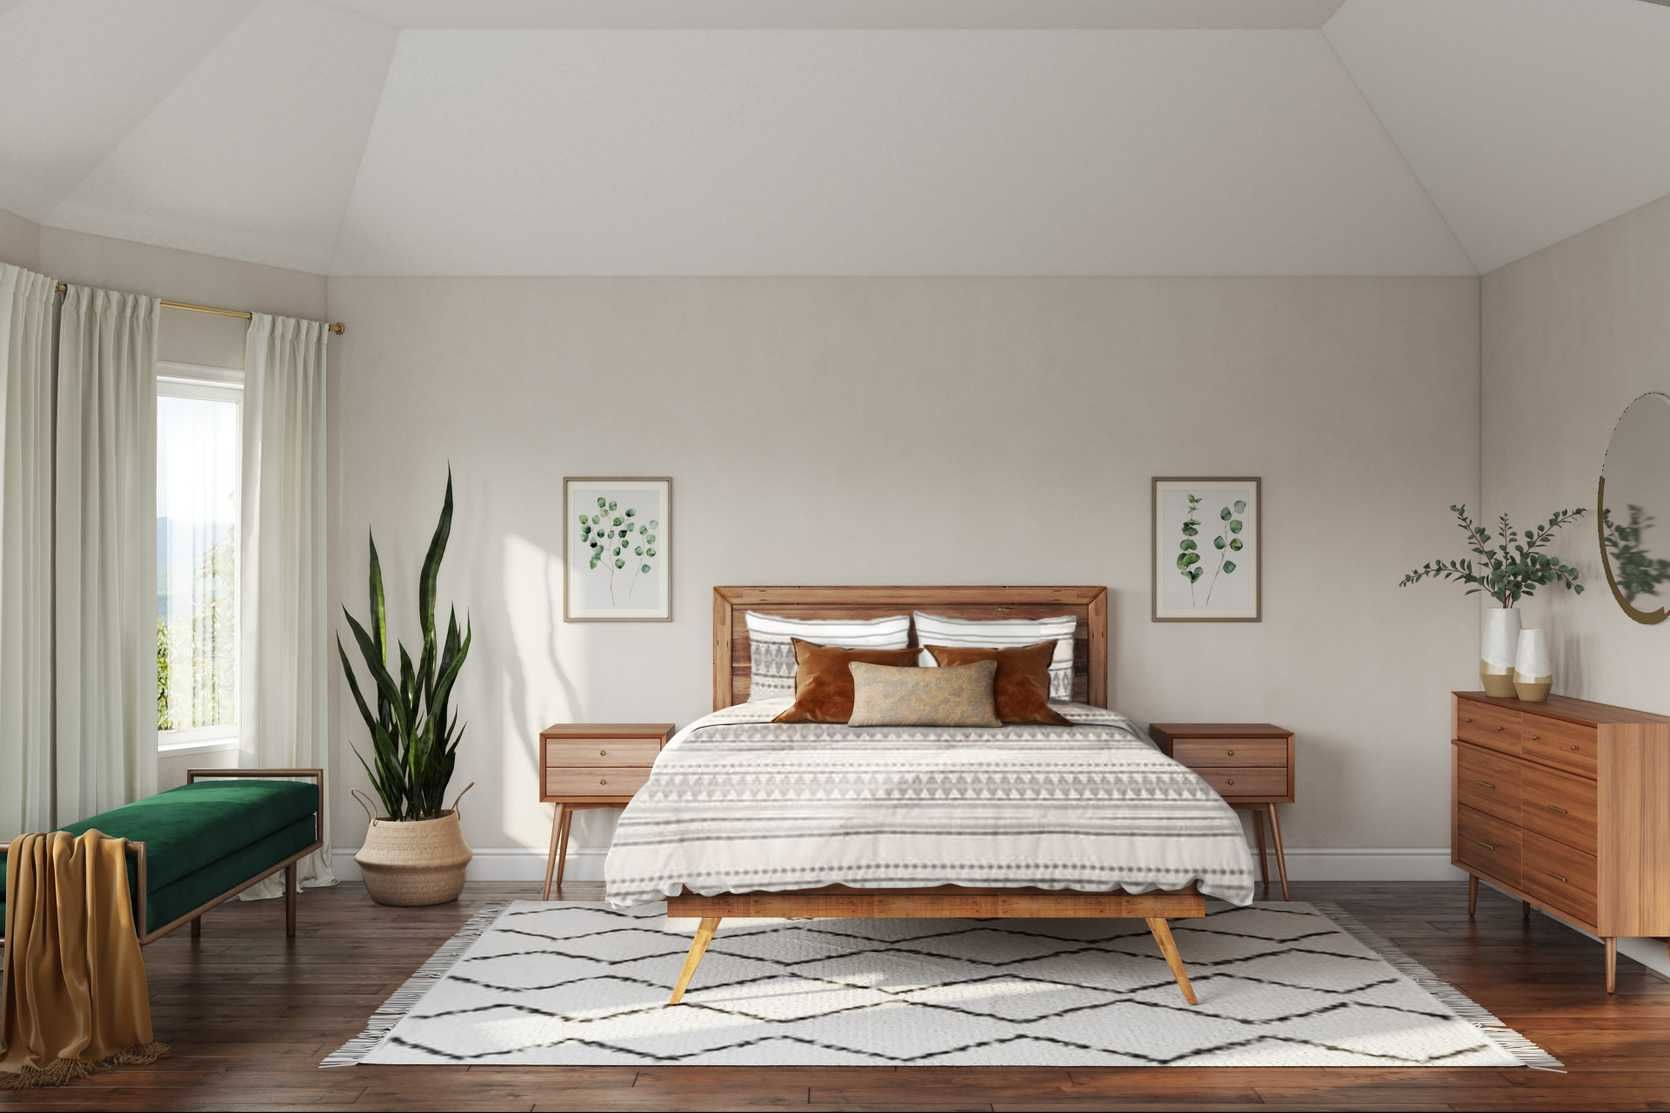 Midcentury Modern Scandinavian Bedroom Design By Havenly Interior Designer Kyla In 2020 Scandinavian Design Bedroom Modern Scandinavian Bedroom Bedroom Interior